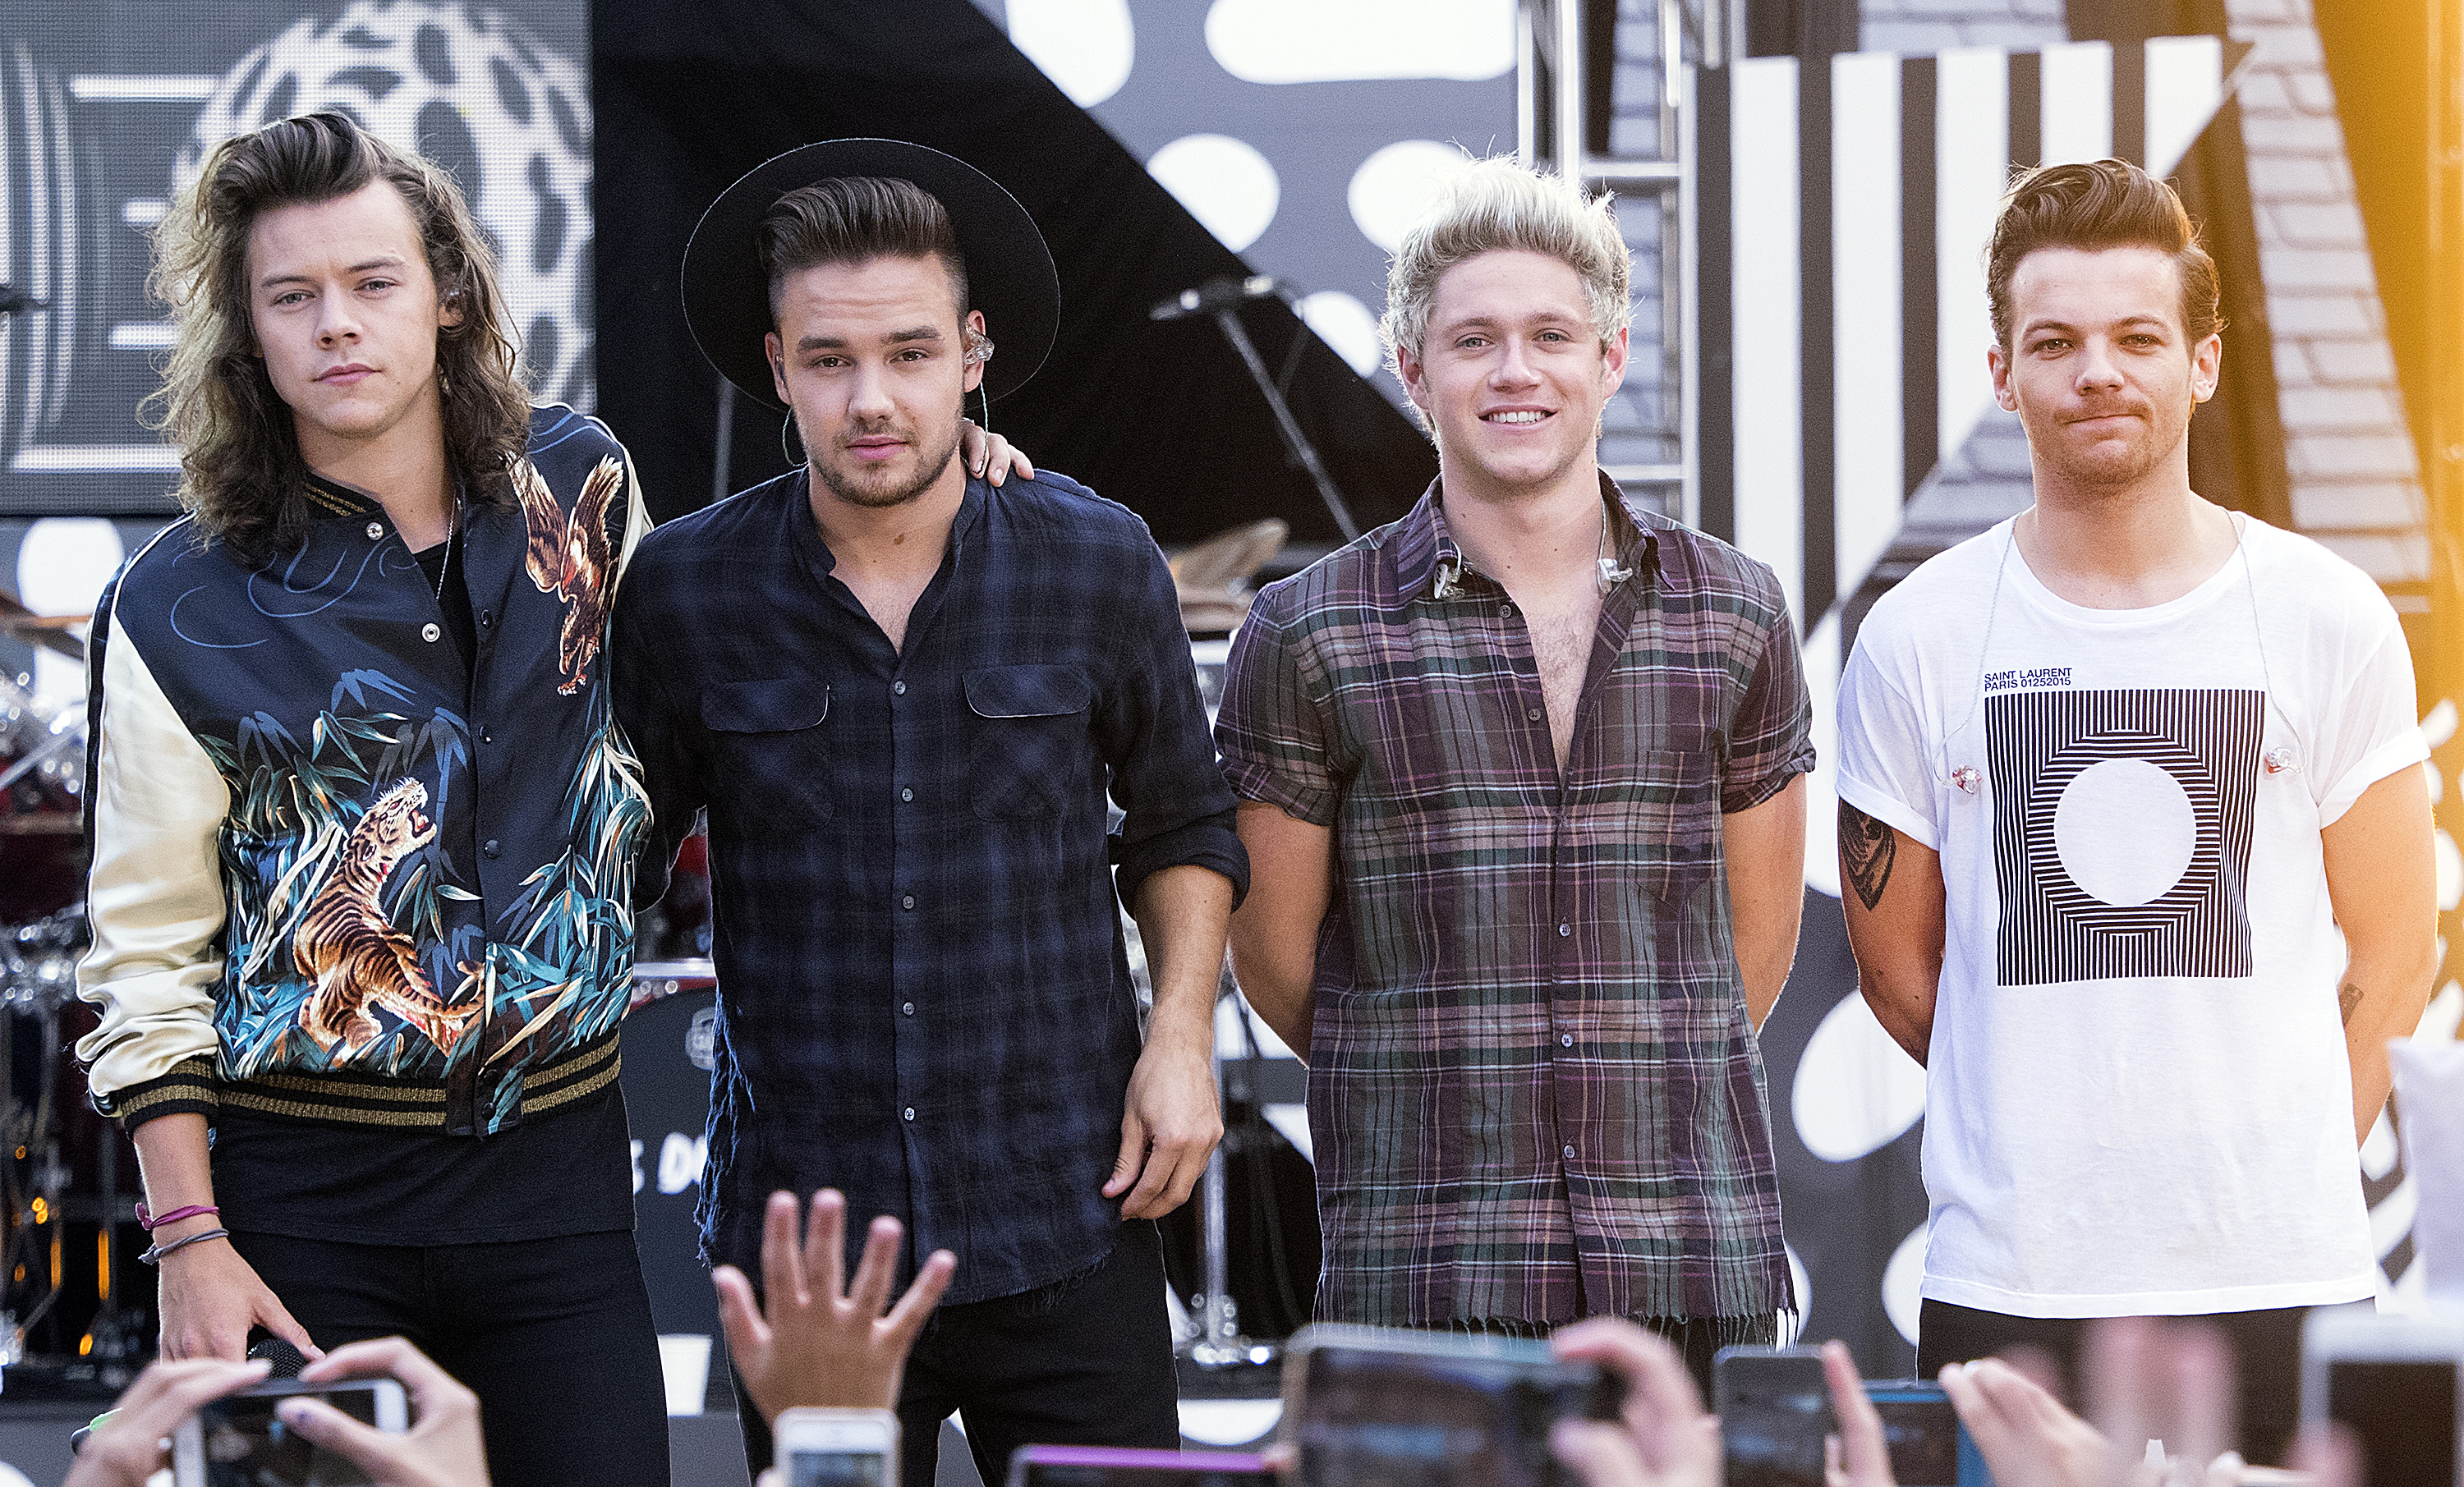 (L-R) Harry Styles, Liam Payne, Niall Horan and Louis Tomlinson of One Direction perform on  Good Morning America's Summer Concert Series  in New York City on Aug. 4, 2015.